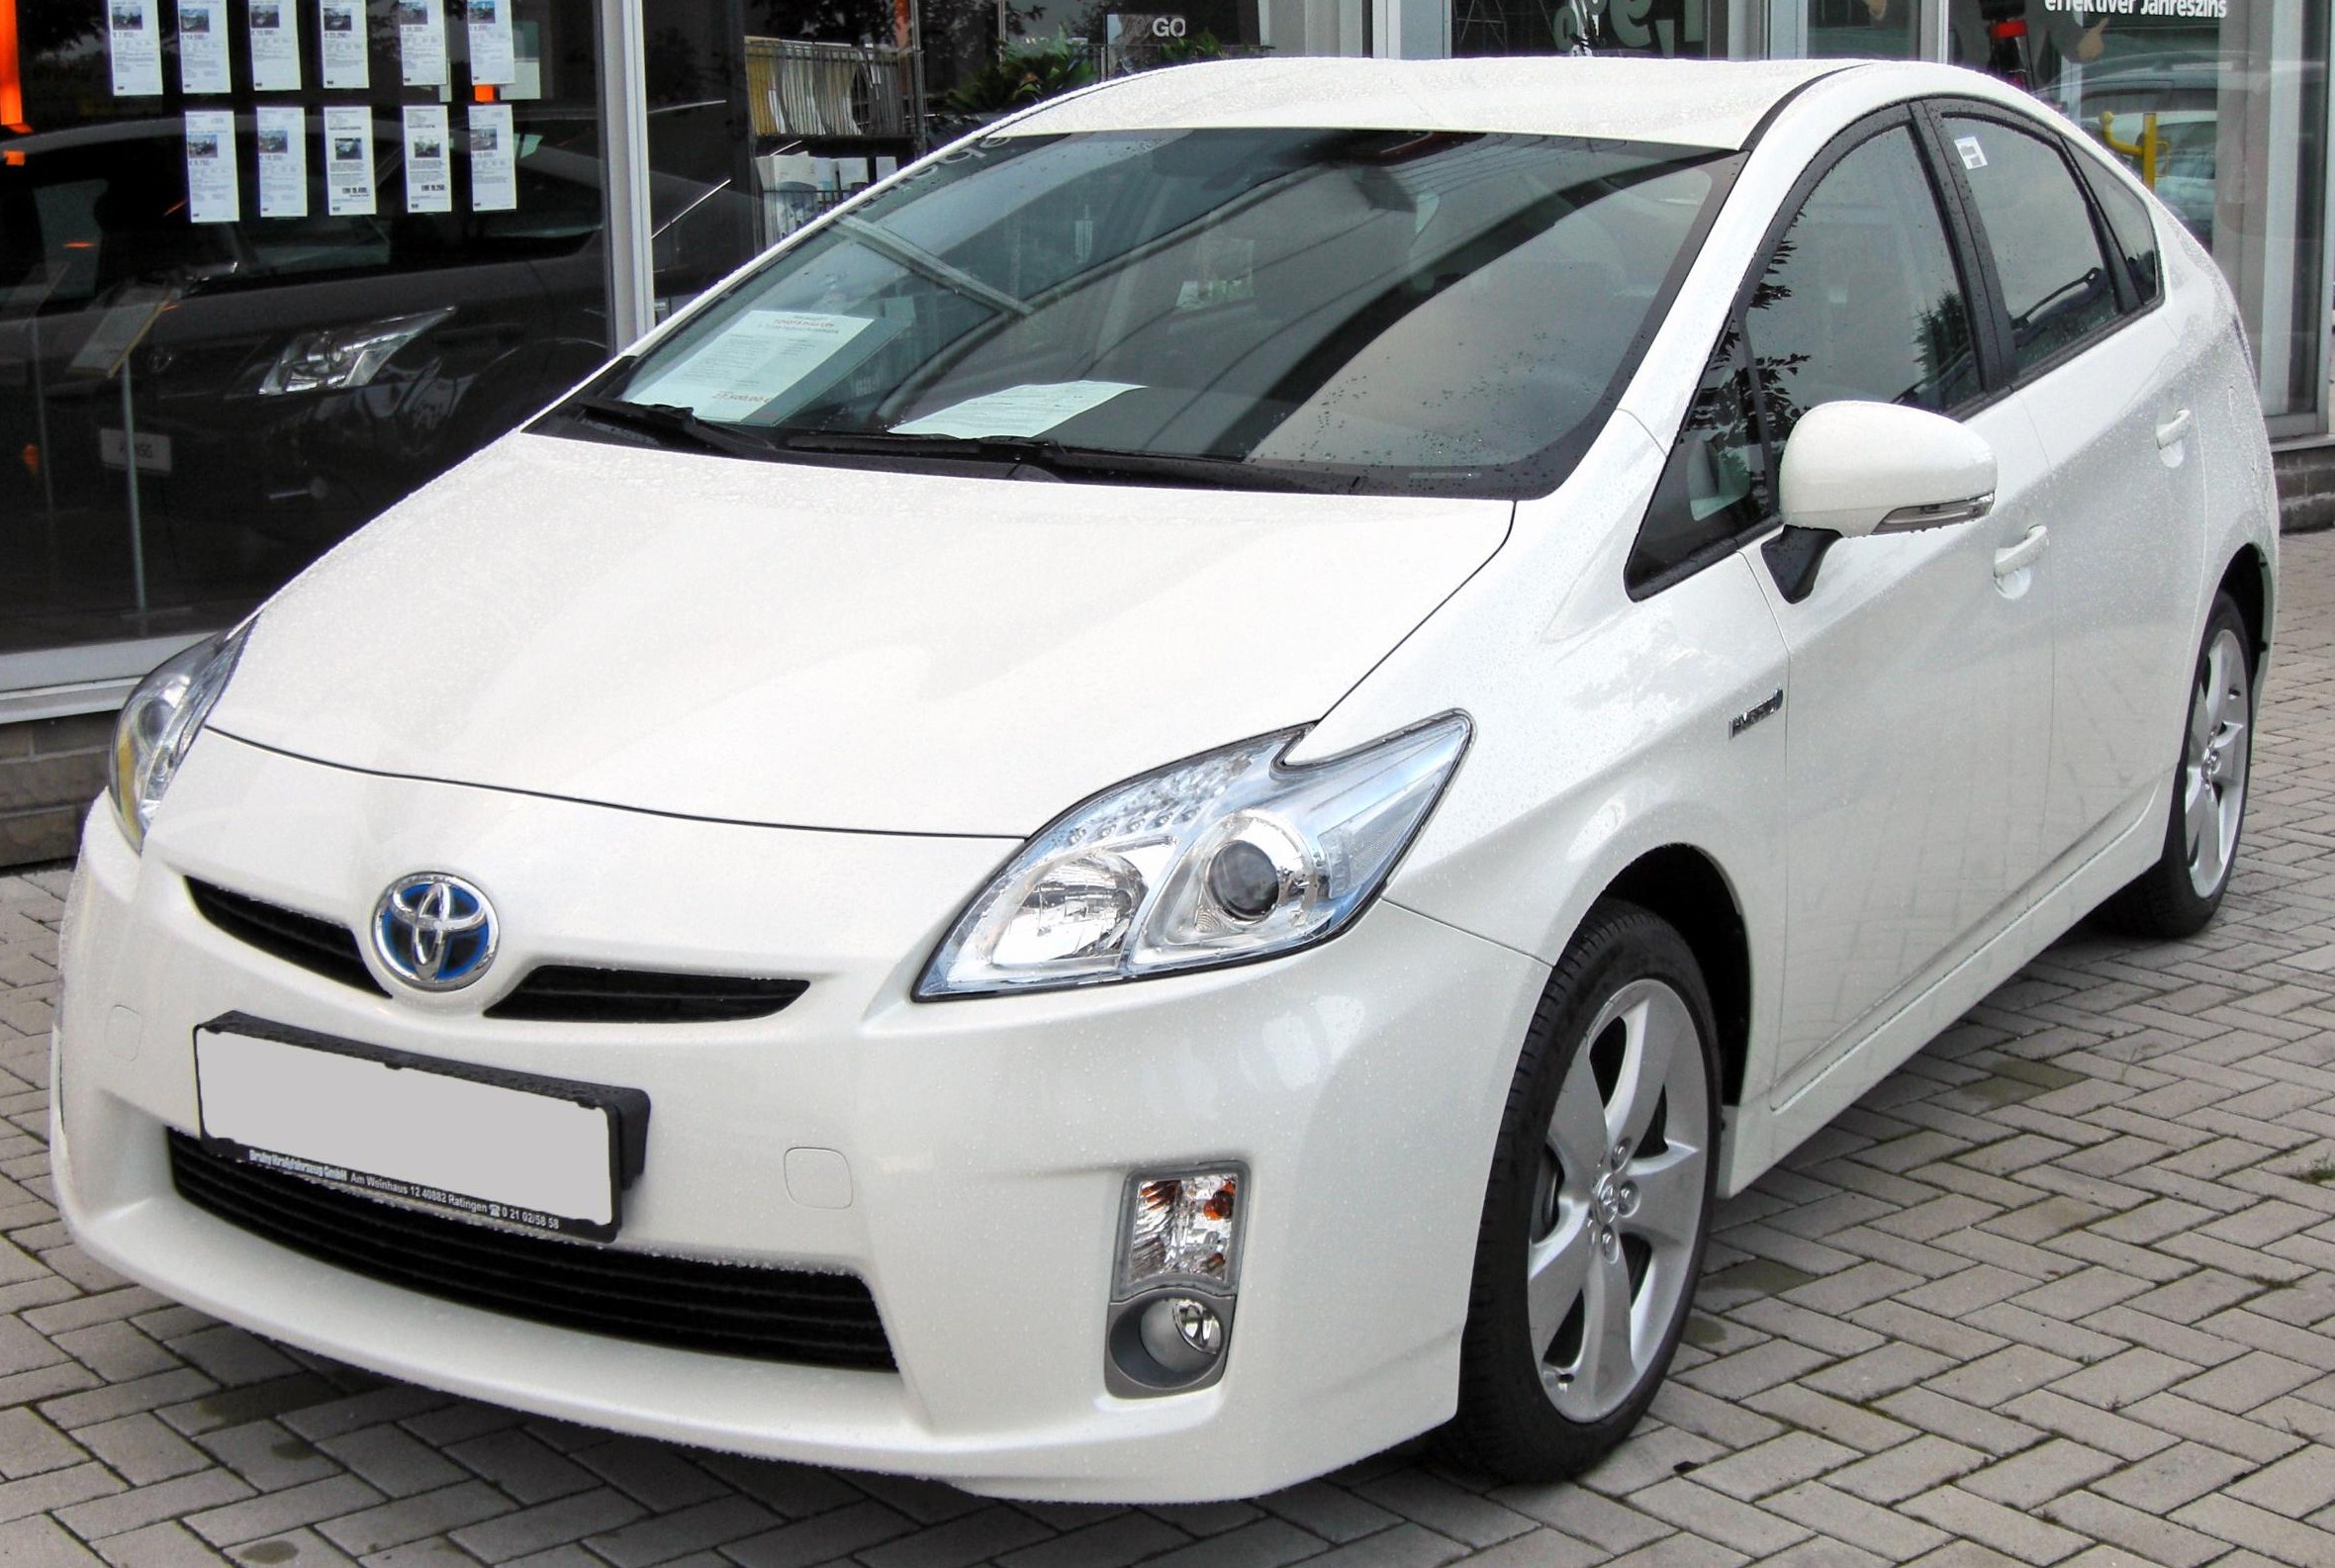 Does the Toyota Prius cost more to insure than the Ford F-Series?